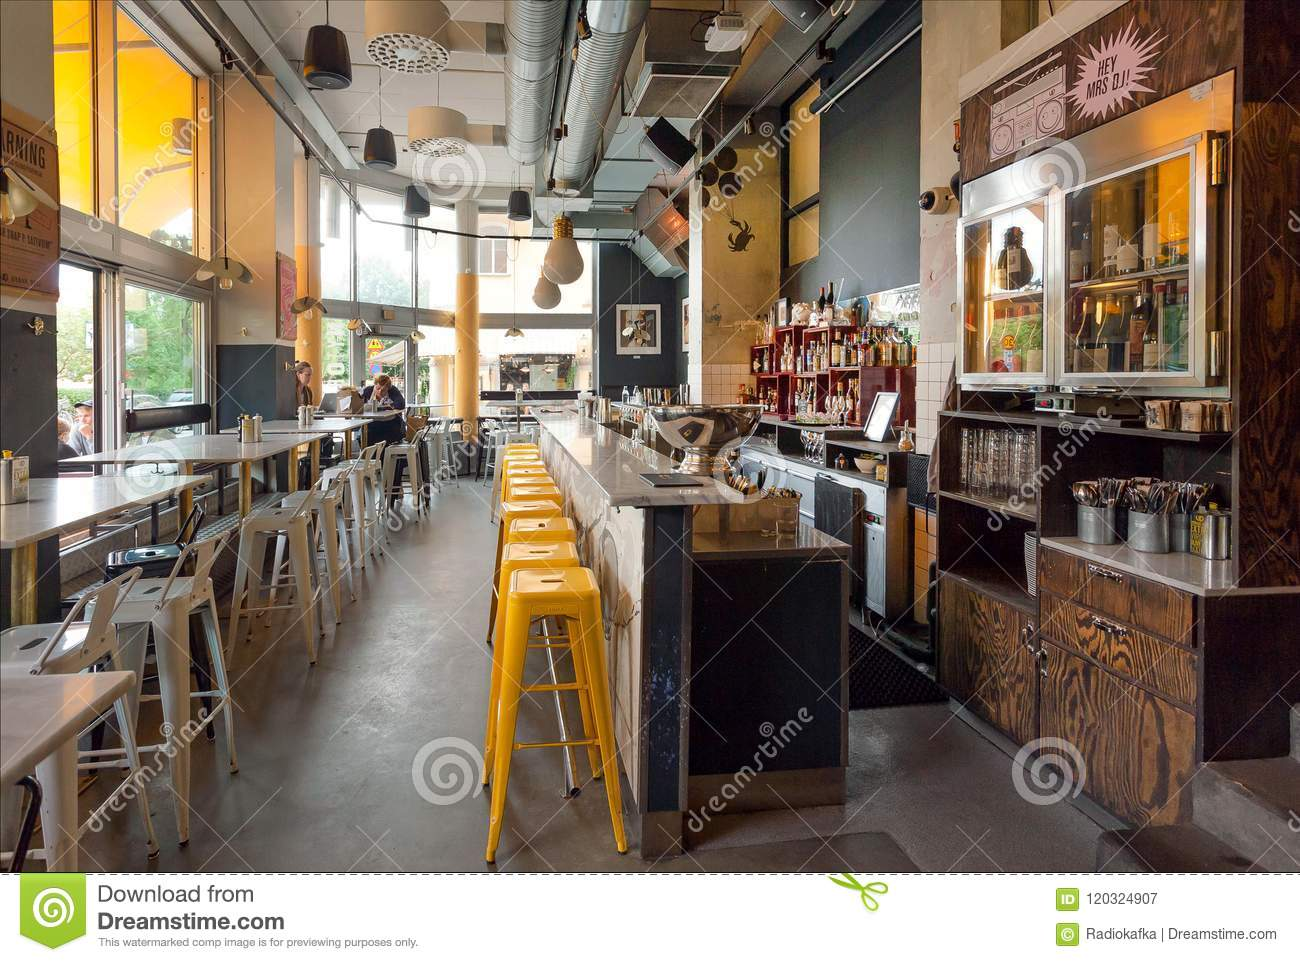 Stockholm sweden jun 15 2018 interior of the modern cafe with bar counter and many bottles with alcohol on june 15 2018 sweden with 105 million